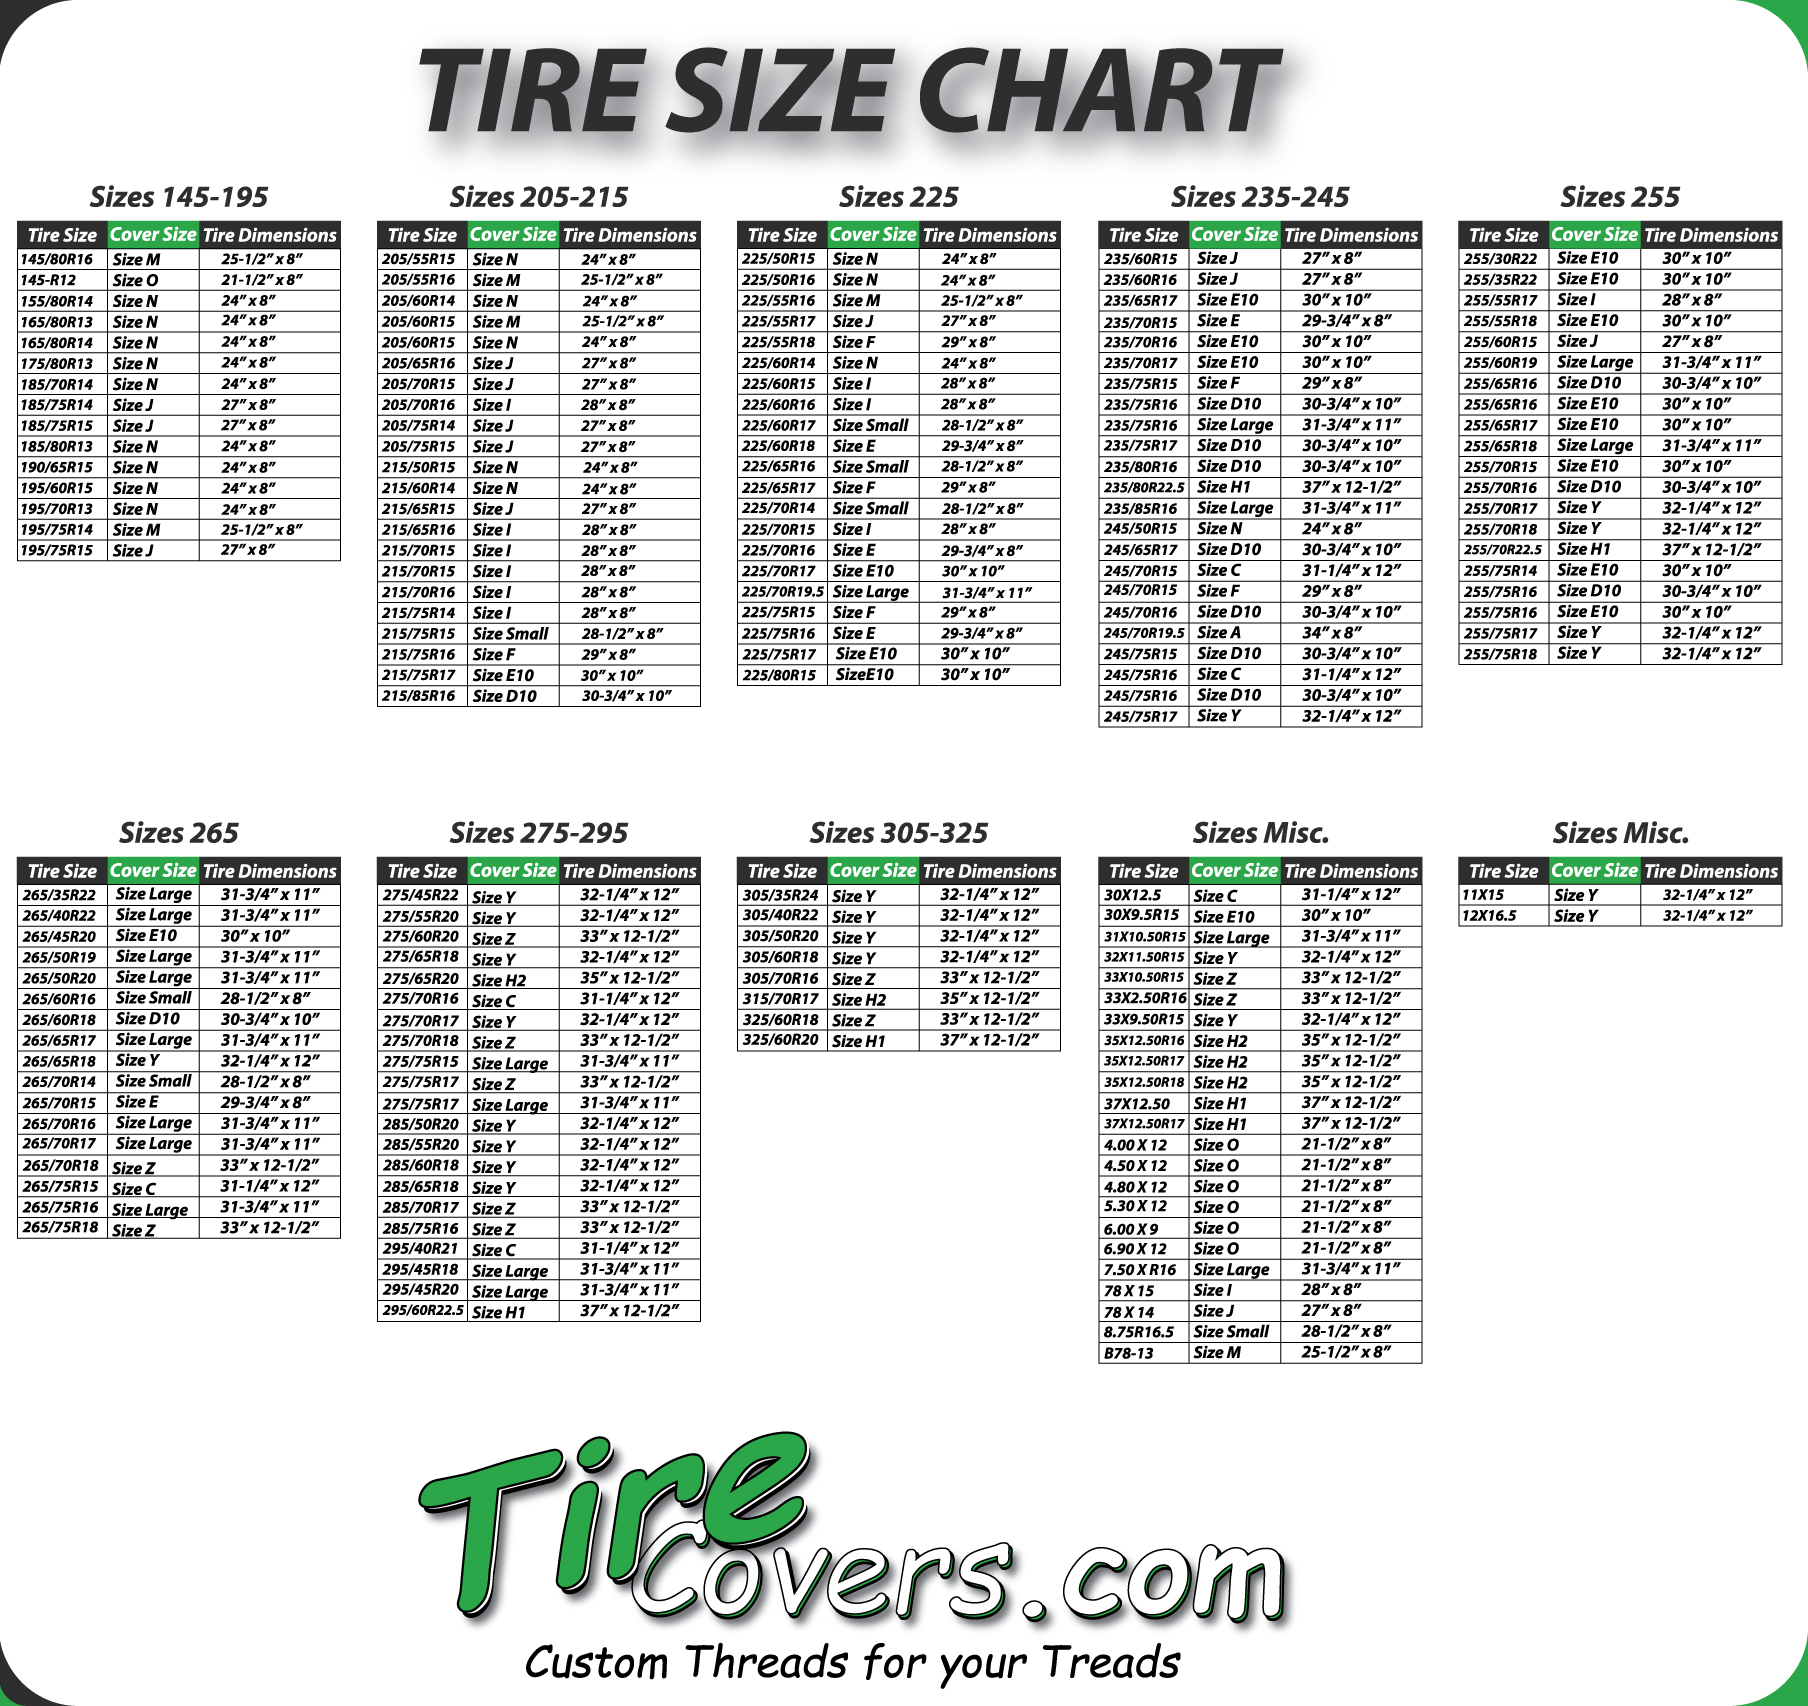 Truck Tires Sizes Chart >> Truck Tire Size Chart - Tractor tire conversion chart - ayucar